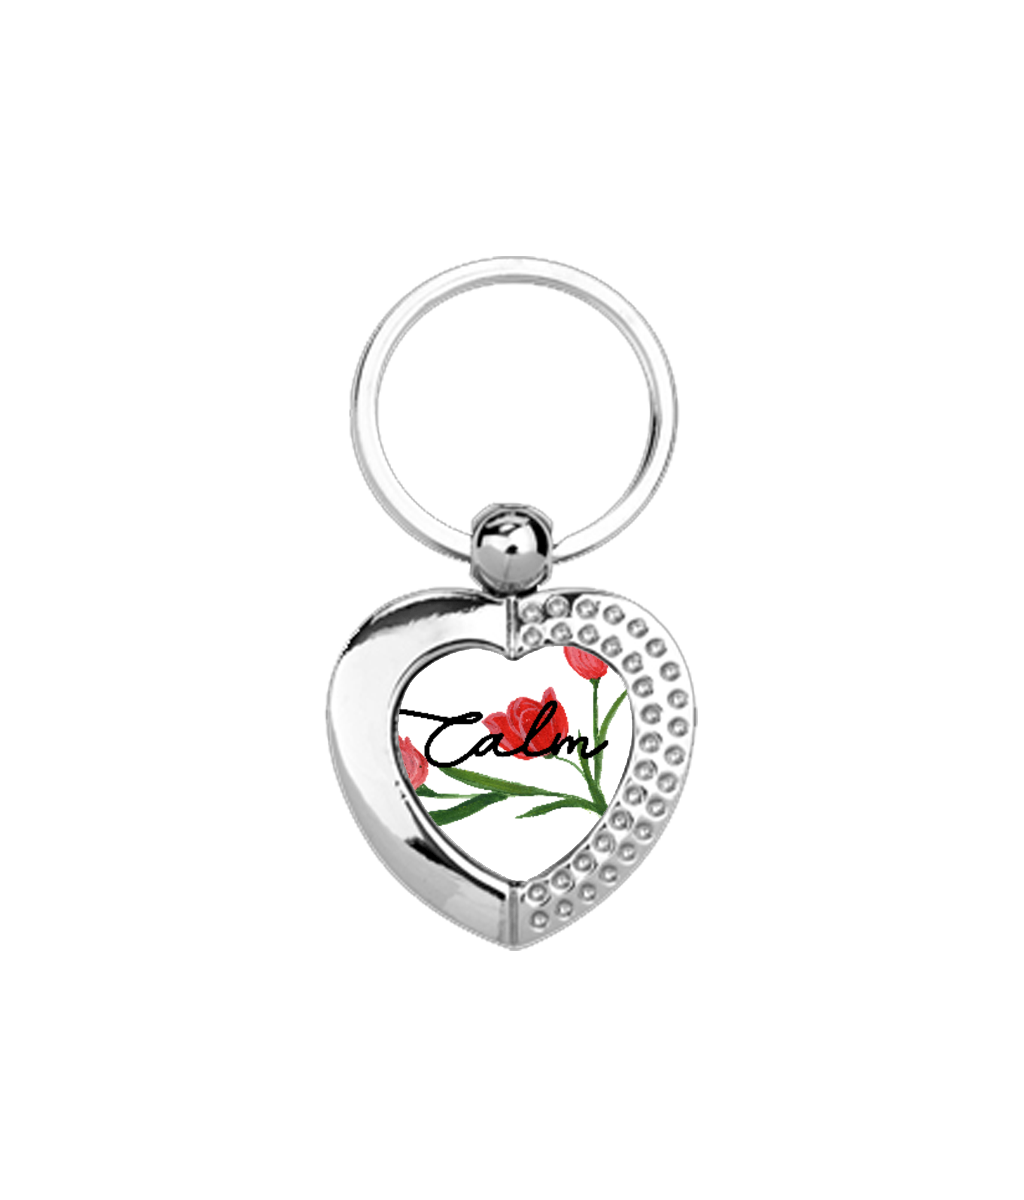 Calm Metal Keyring